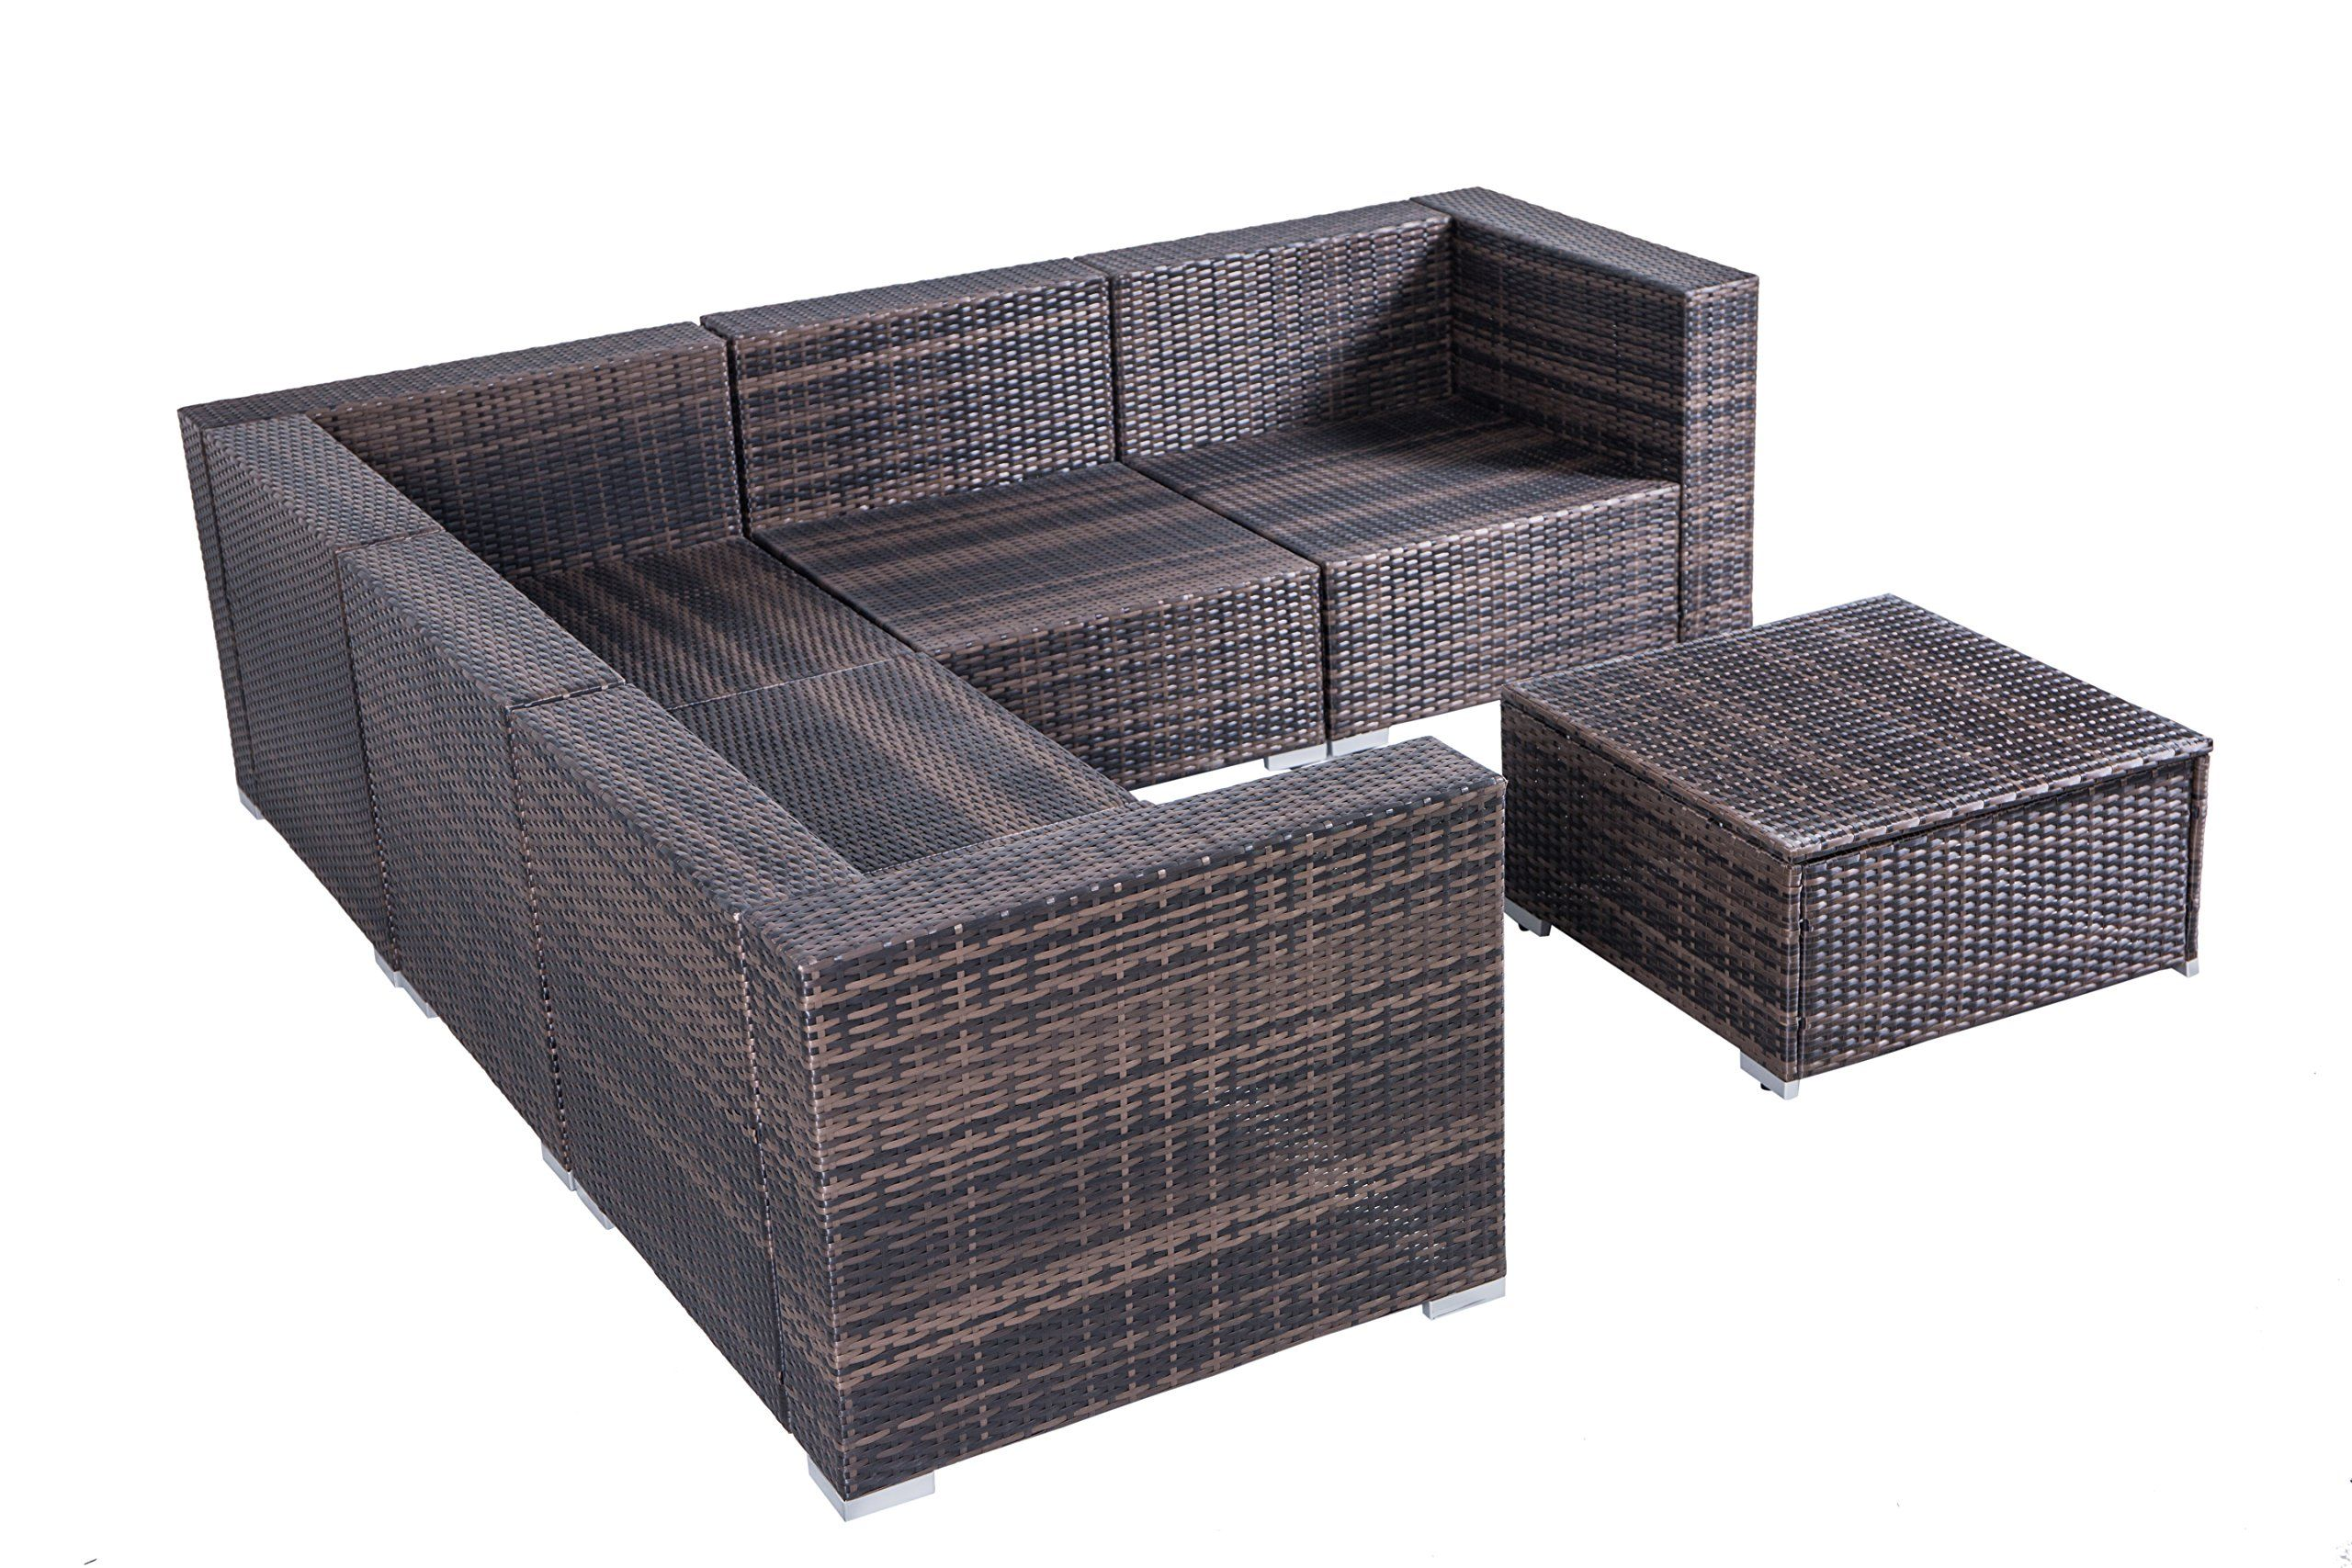 Outdoor Cushioned Rattan Wicker Patio Furniture Set Sectional Conversation Garden Leisure Lshaped Corner Sofa 6pcs Visit The Image Link More Details This